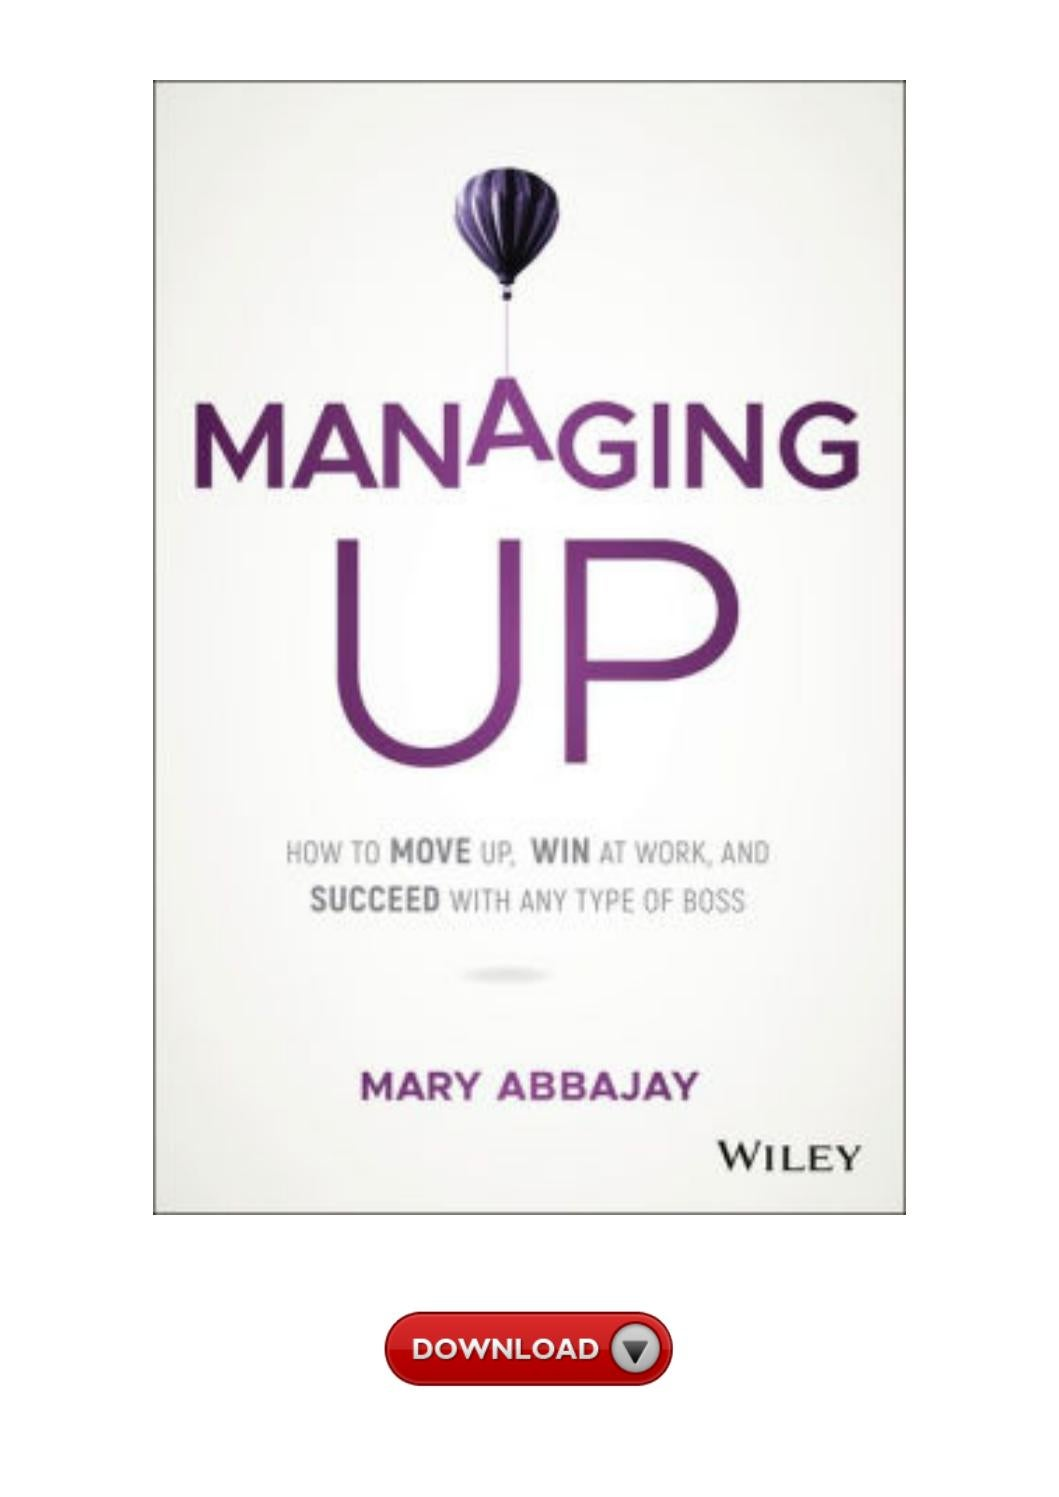 Downloads Managing Up How To Move Up Win At Work And Succeed With Any Type Of Boss By Carl Lazo1980 Issuu